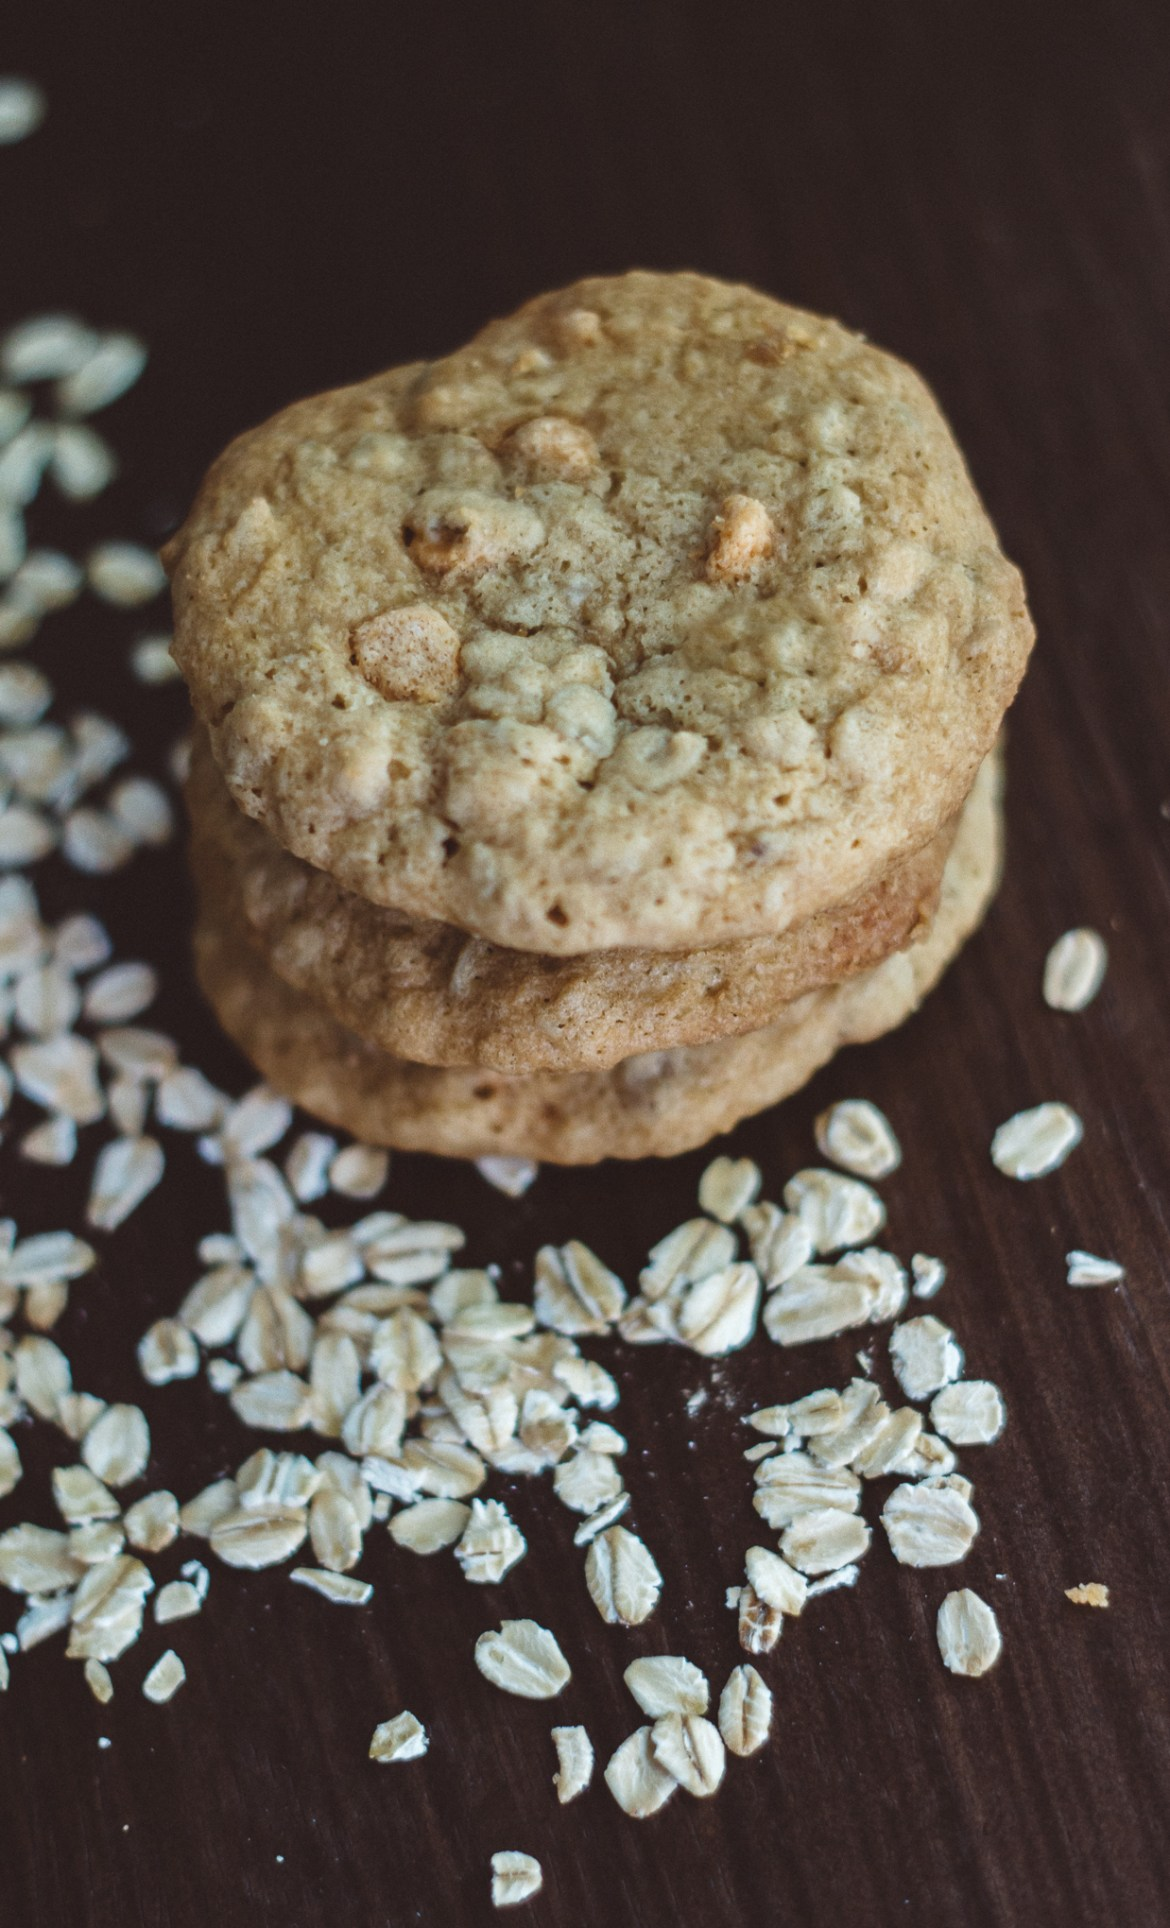 jim beam bourbon, butterscotch oatmeal cookies, bourbon butterscotch oatmeal cookies, baking, how to bake cookies